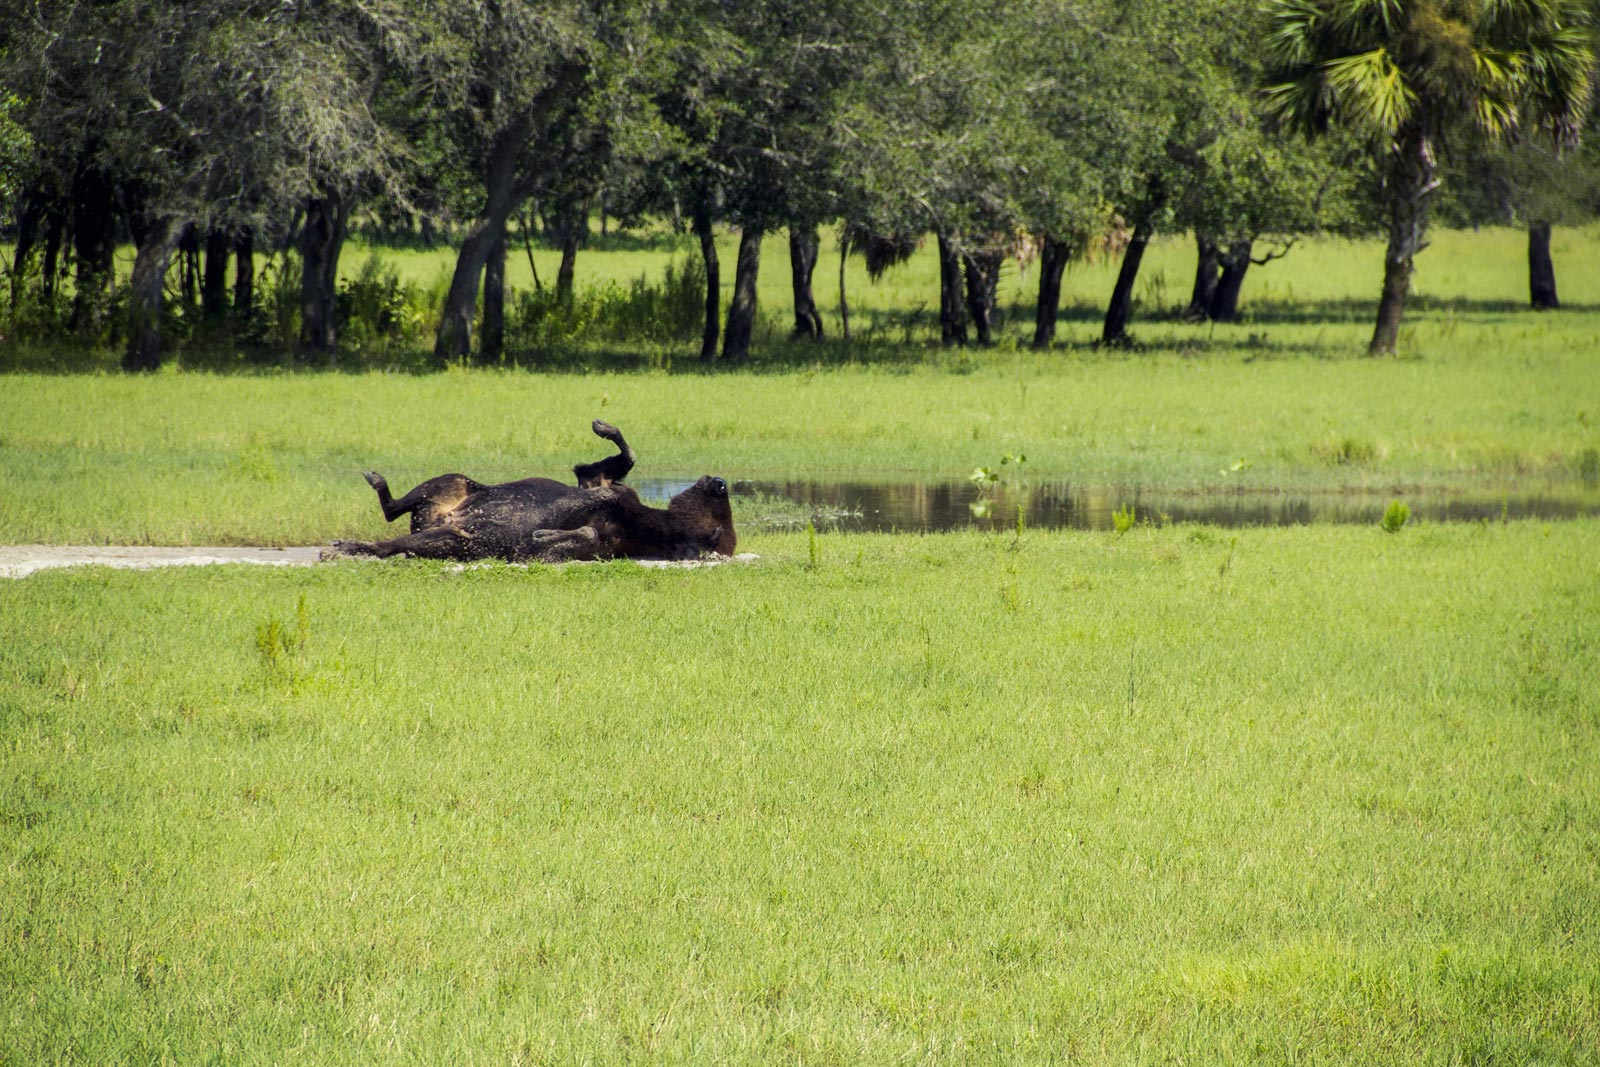 Wildlife to See in the Florida Everglades